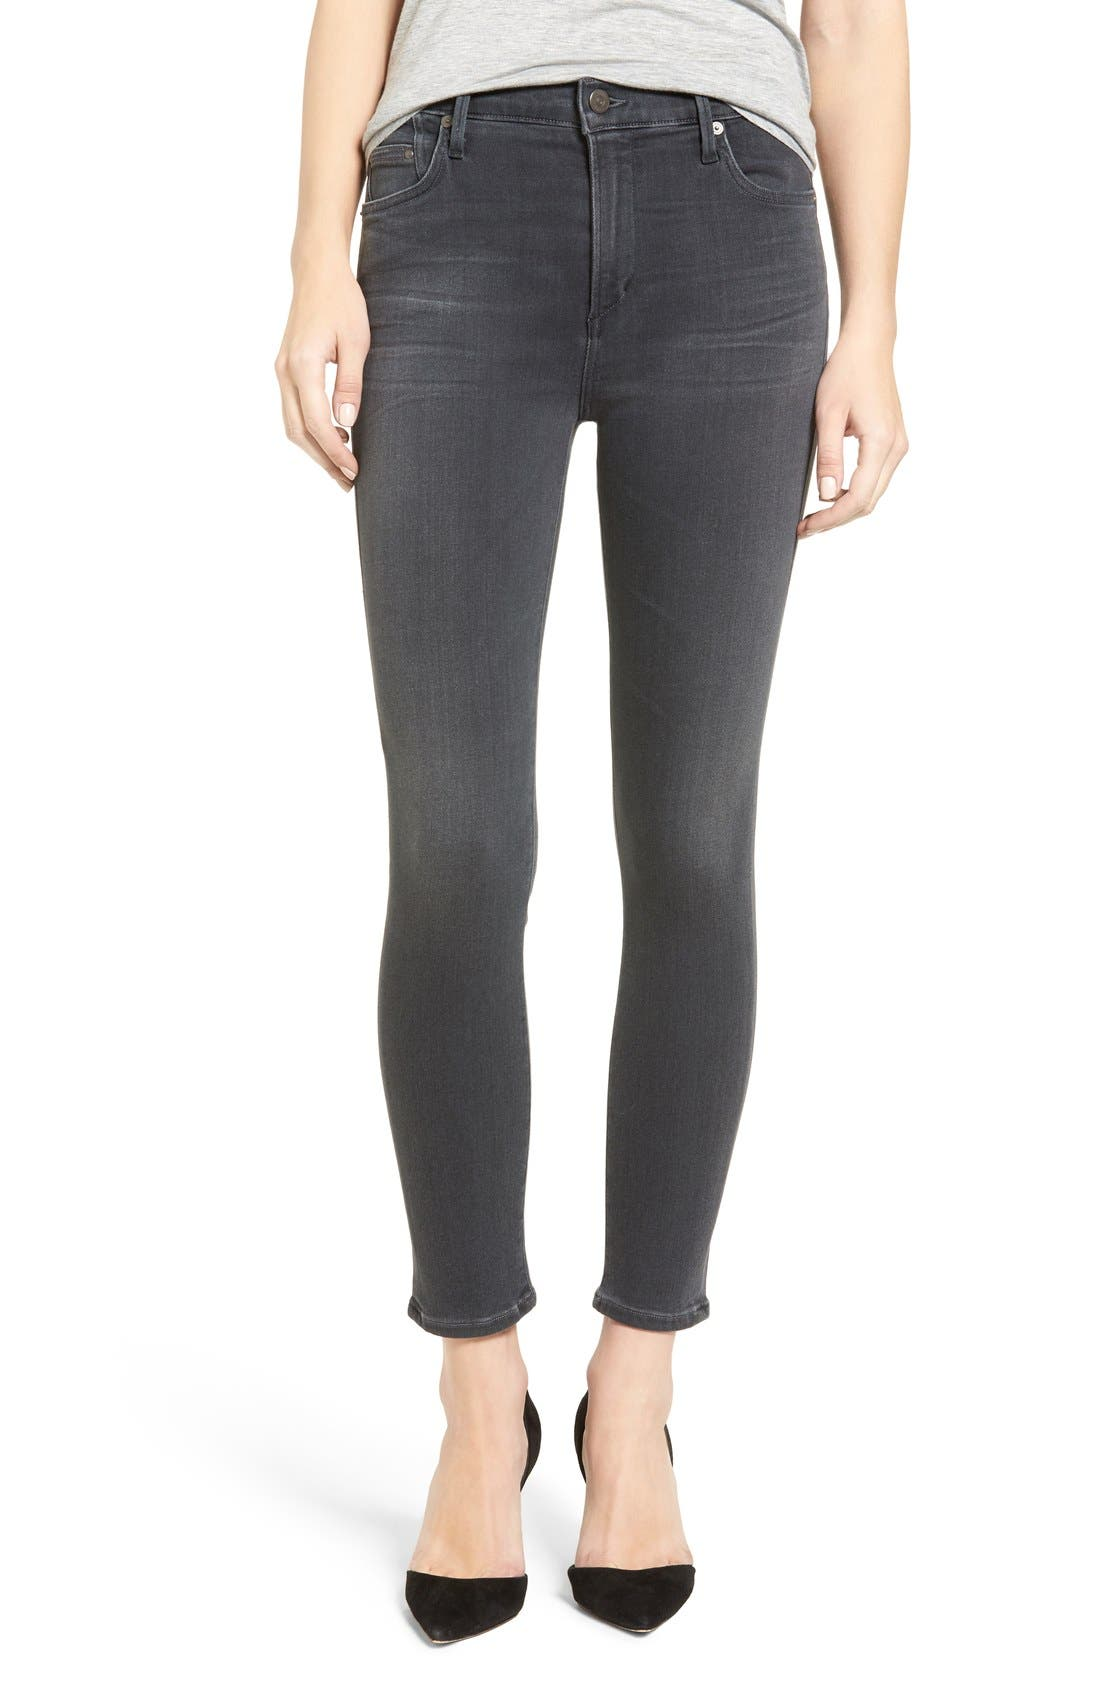 CITIZENS OF HUMANITY Rocket High Waist Crop Skinny